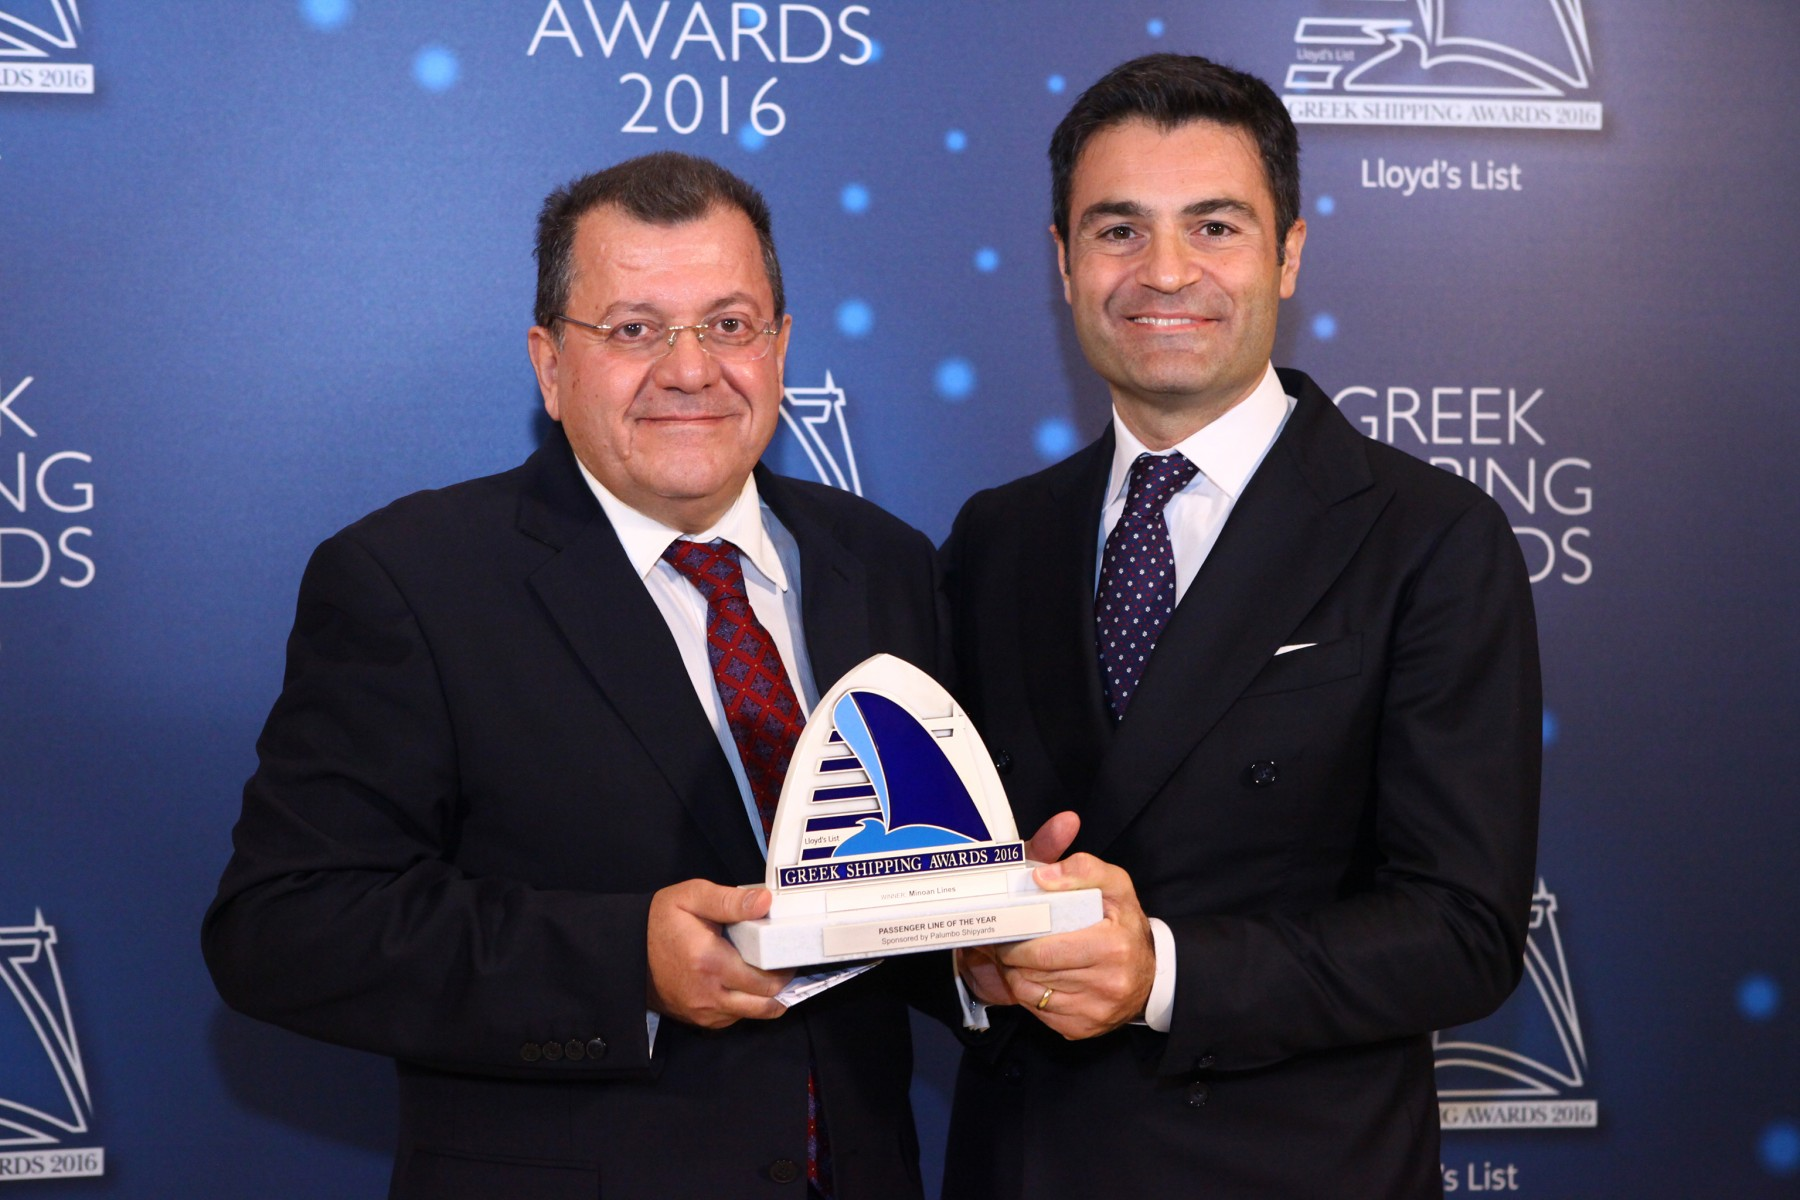 Mr. Antonis Maniadakis of Minoan Lines accepting the Passenger Line of the Year Award from Mr. Raffaele Palumbo of sponsor Palumbo Group.